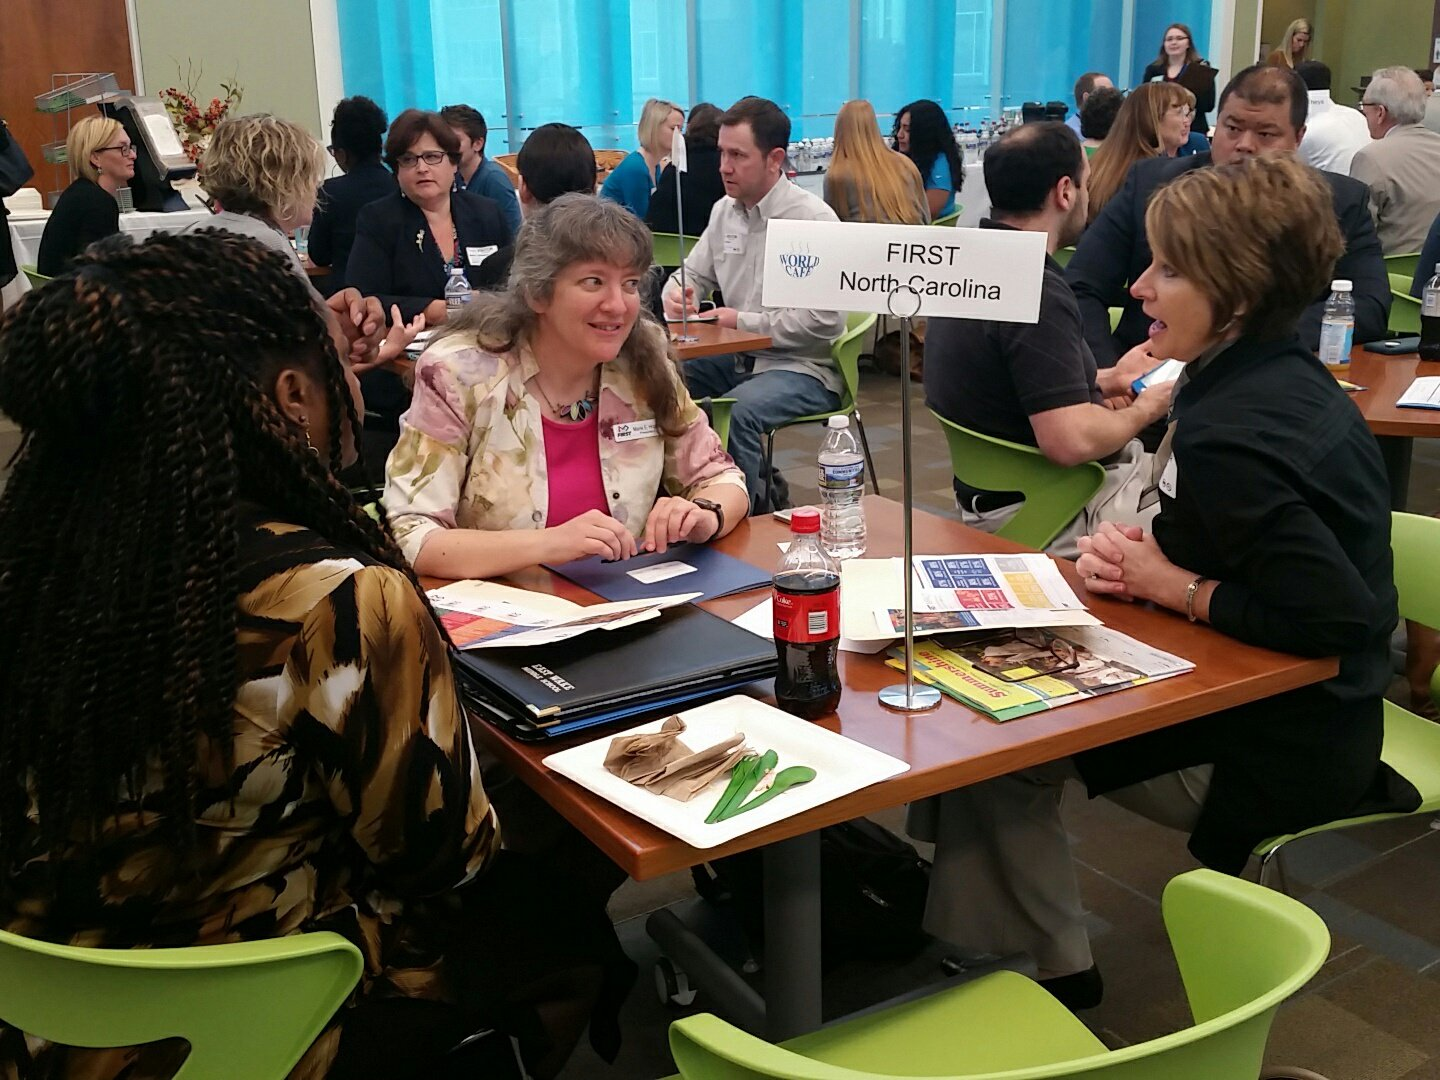 @ewmid @FIRSTNC mapping out how to engage students through robotics #WakeEdWorldCafe https://t.co/P1qK0vMv8a